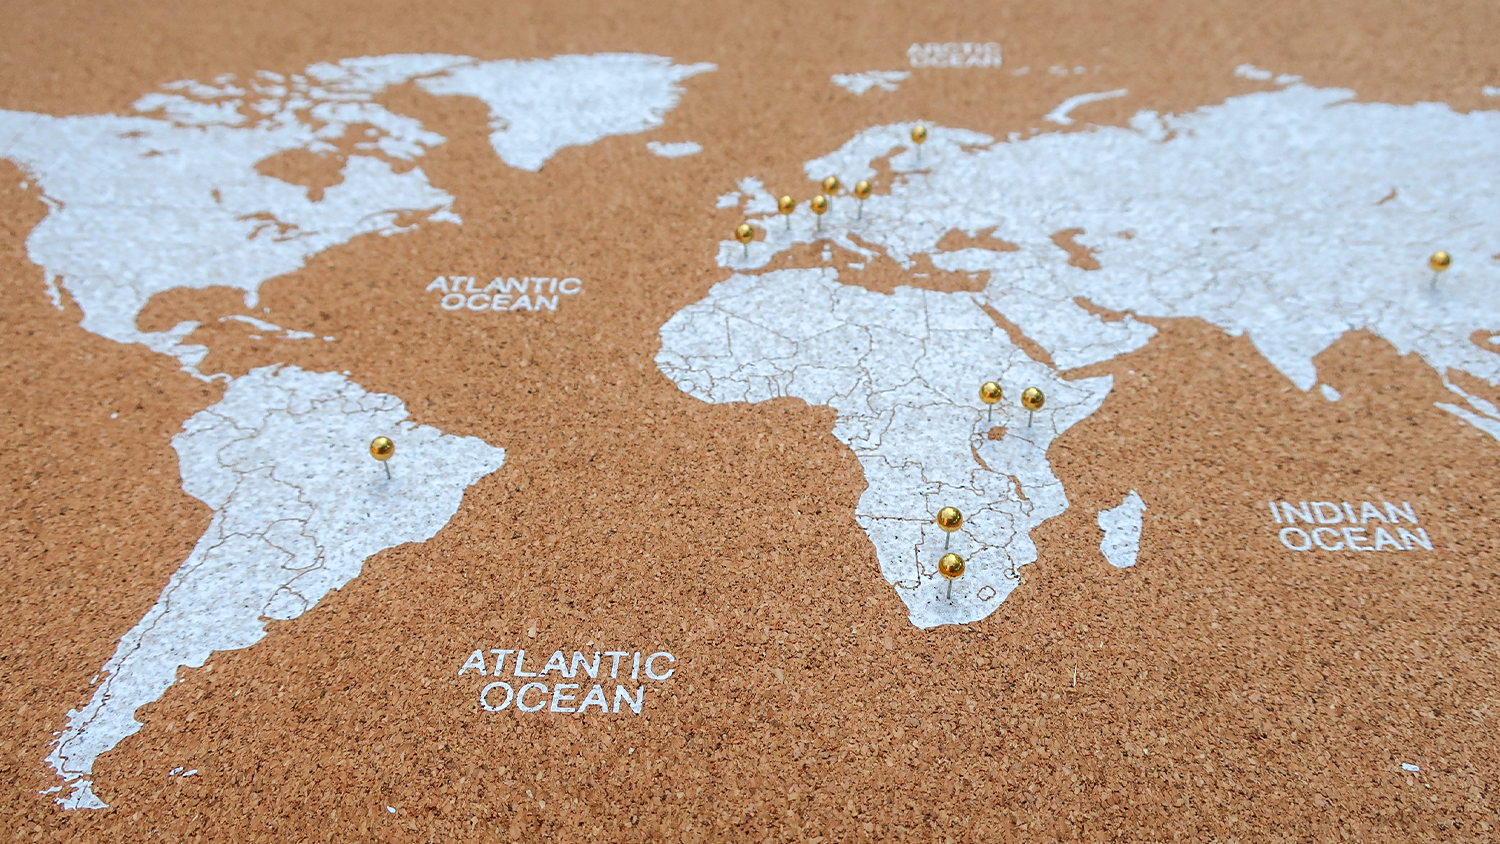 A world map that has pins in it to show someone's travel destinations.